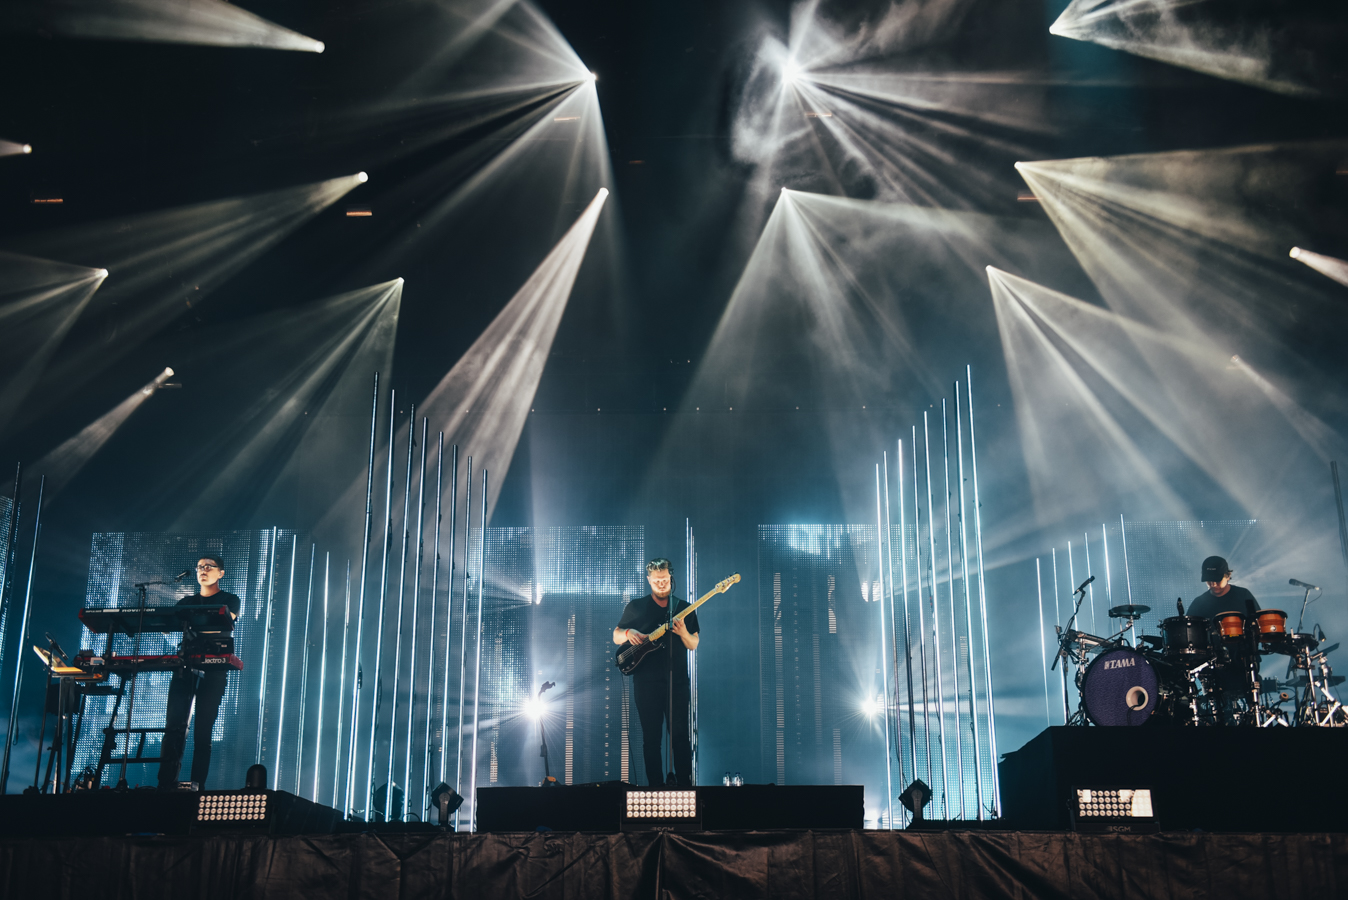 Vince Staples, alt-J and more keep the party going at Lowlands 2017